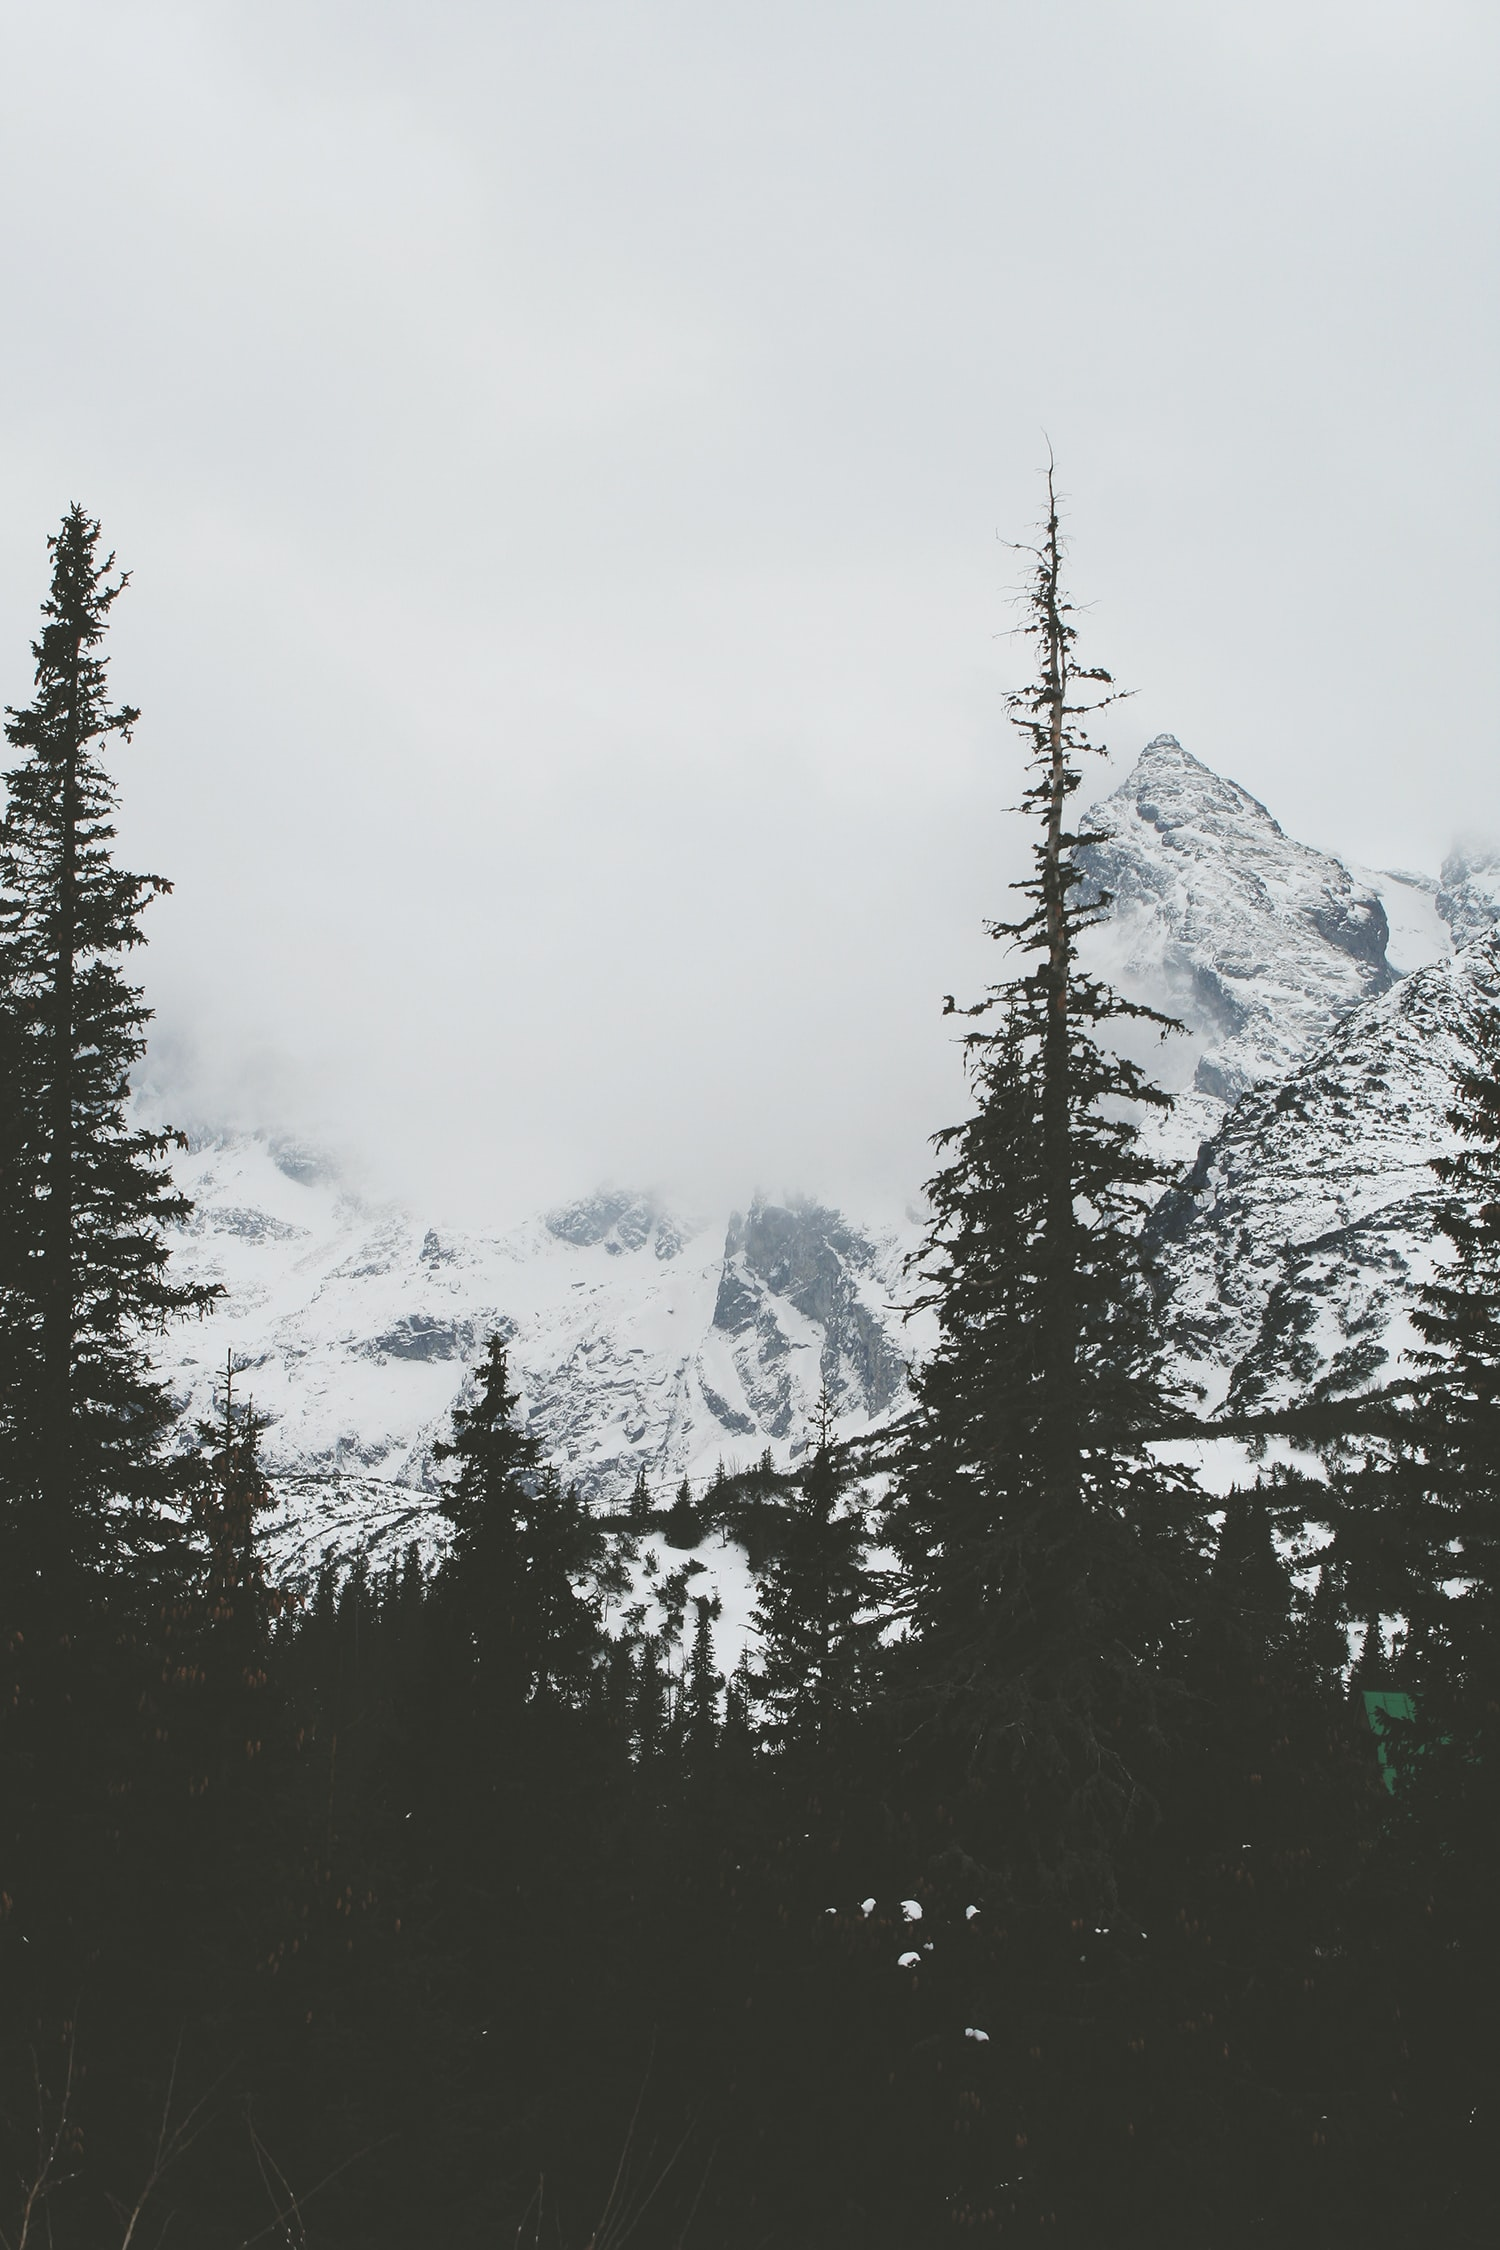 Dark silhouettes of conifers against the white background of snowy peaks